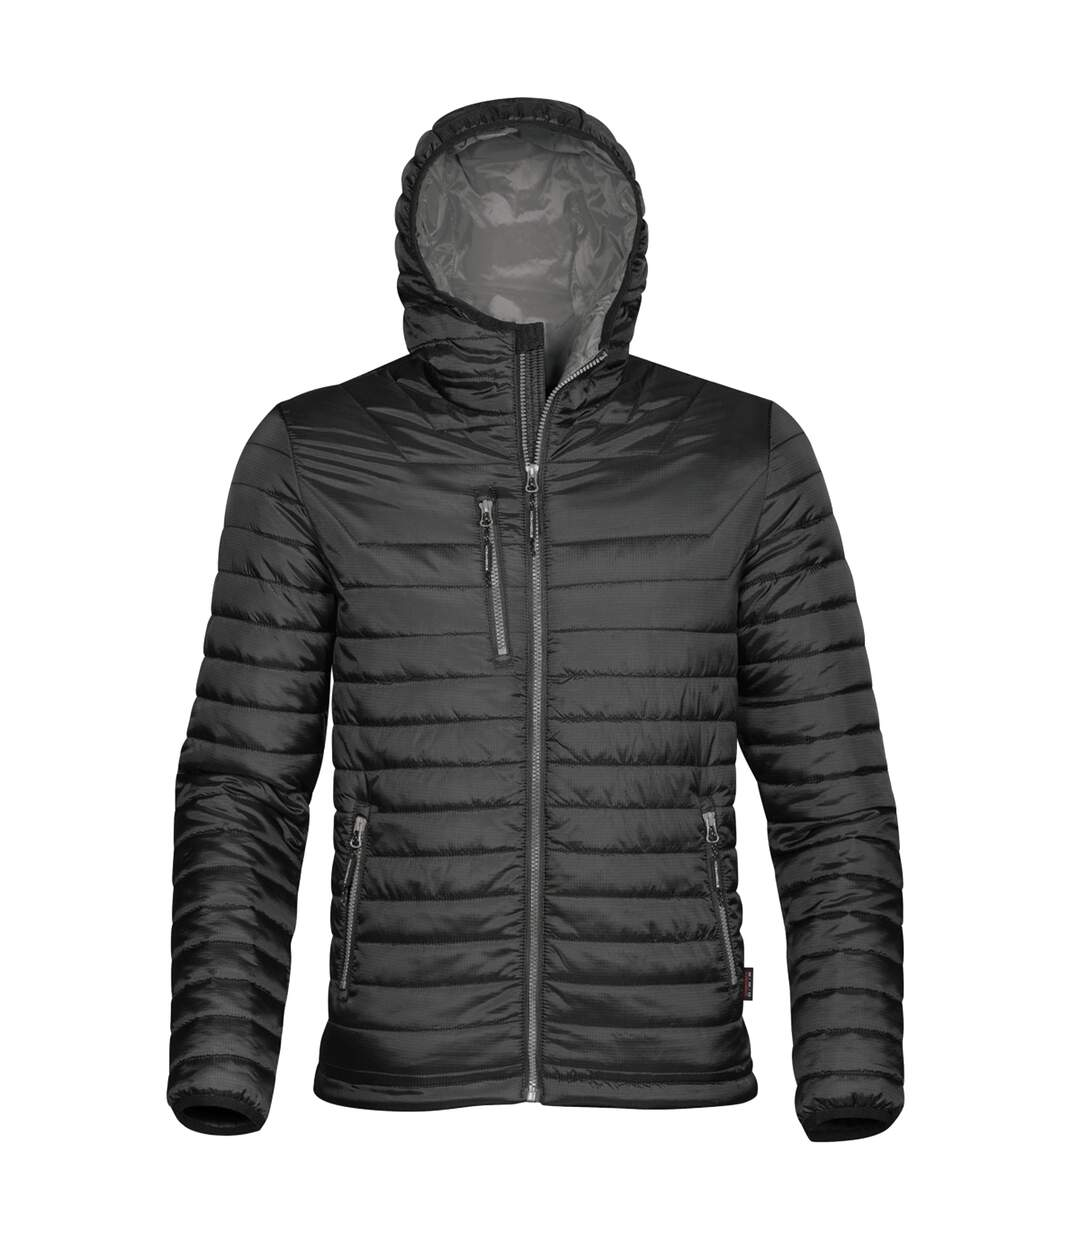 Stormtech Mens Gravity Hooded Thermal Winter Jacket (Durable Water Resistant) (Black/Charcoal) - UTBC3064